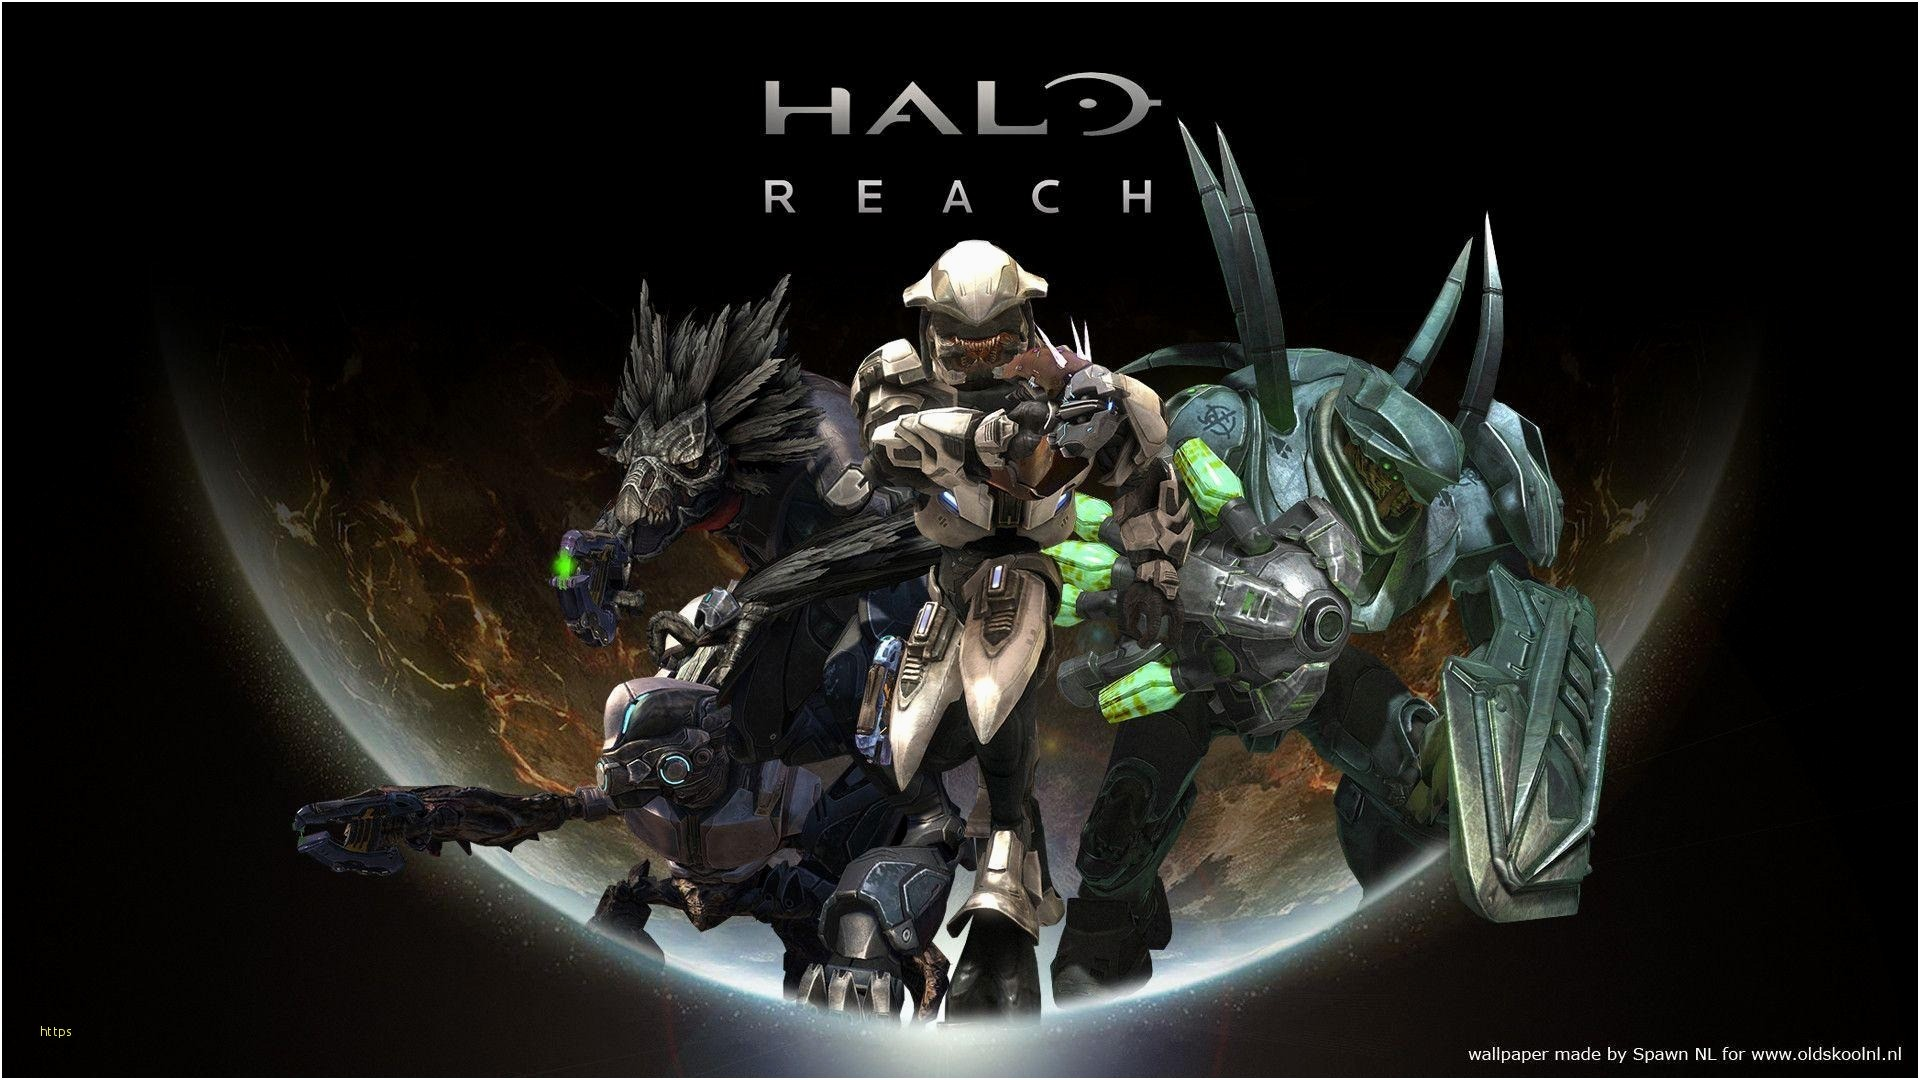 1920x1080 ... Halo Reach Wallpaper Beautiful Halo Reach Wallpapers Wallpaper Cave ...